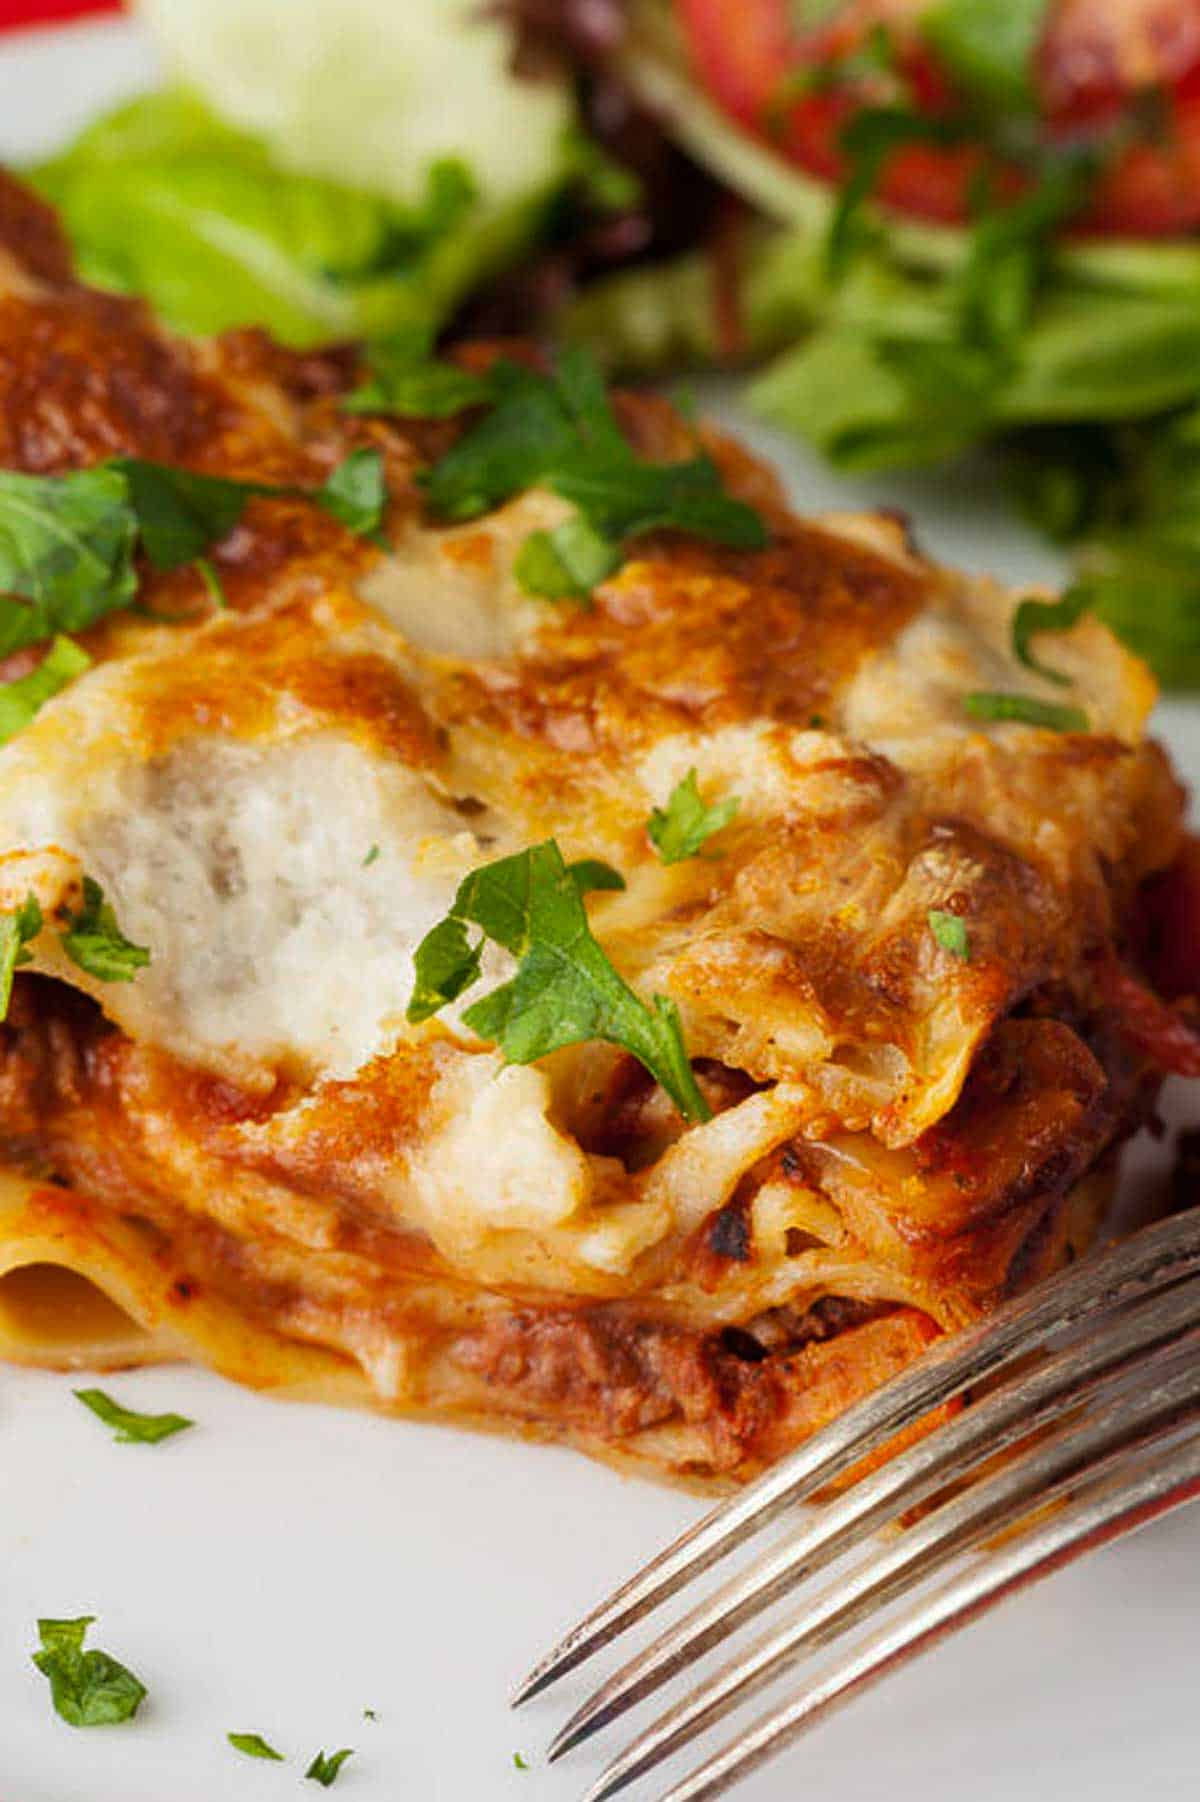 Make this easy lasagna recipe simple with fresh herbs on top